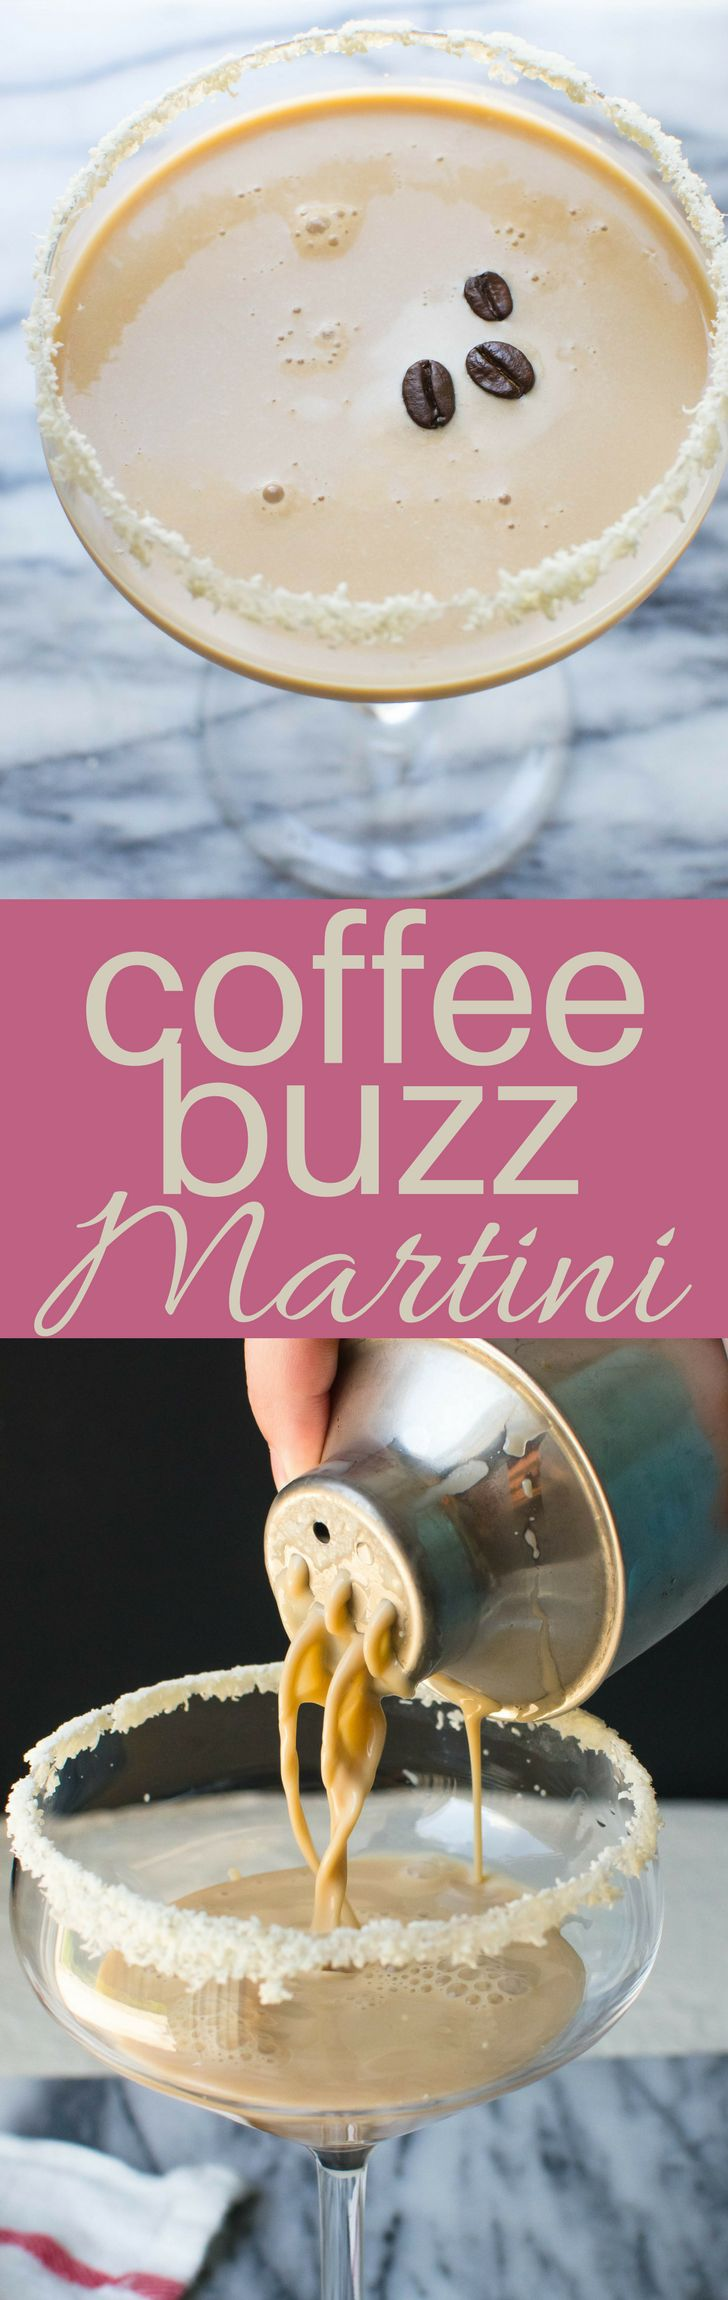 This easy Coffee Buzz Martini recipe is a cross between cocktails & dessert! Kahlua, Irish cream, vodka, coffee simple syrup & half and half, shaken with ice